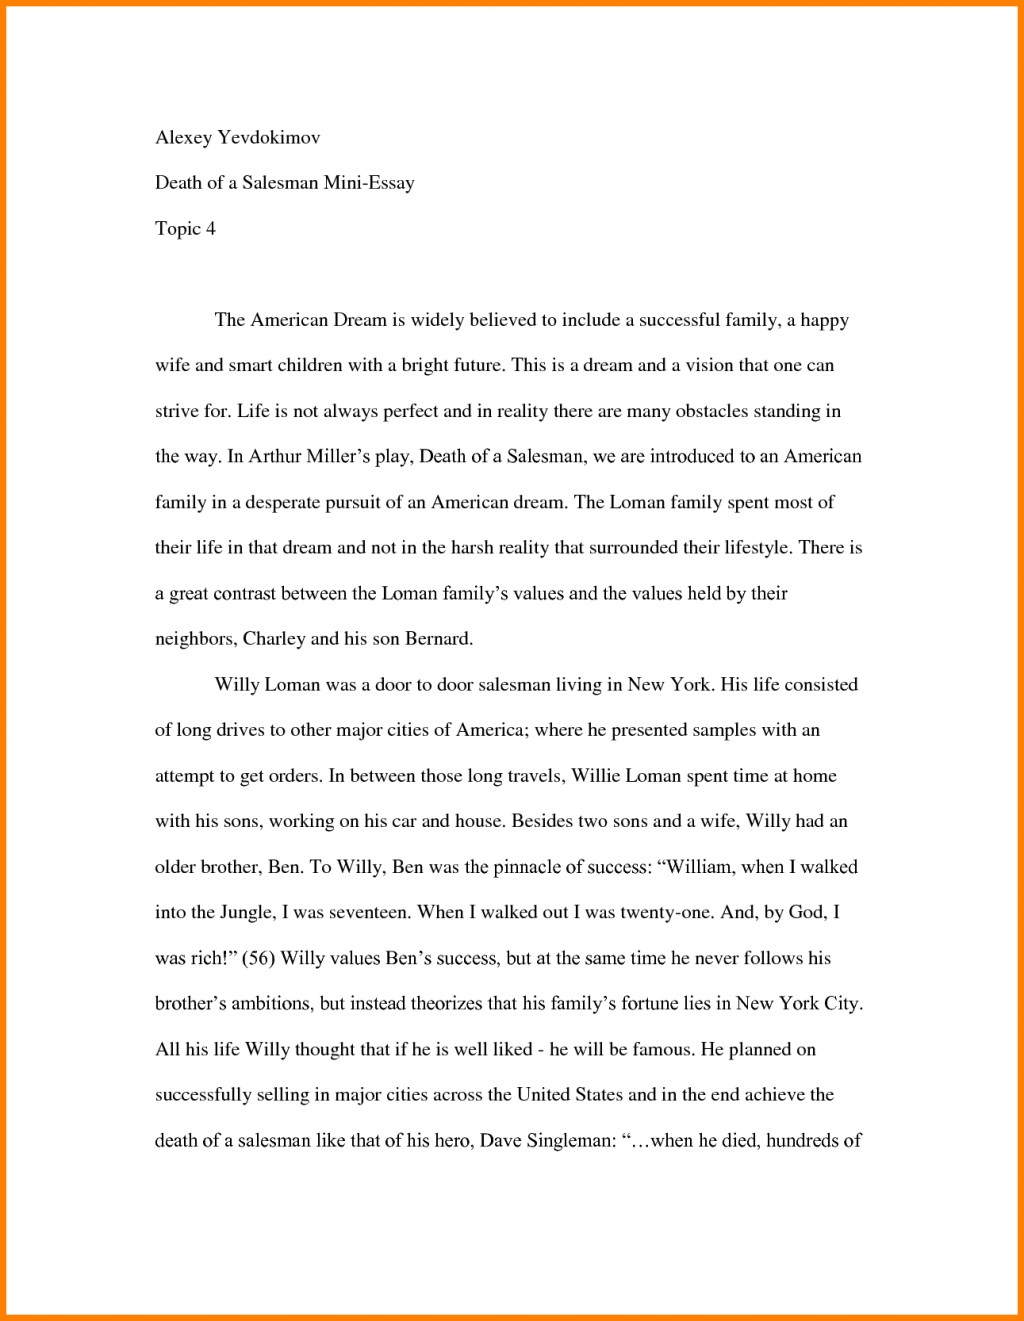 004 Essay Example How To Start Off An About Yourself Amazing Analysis On A Book Ways With Question Two Books Large